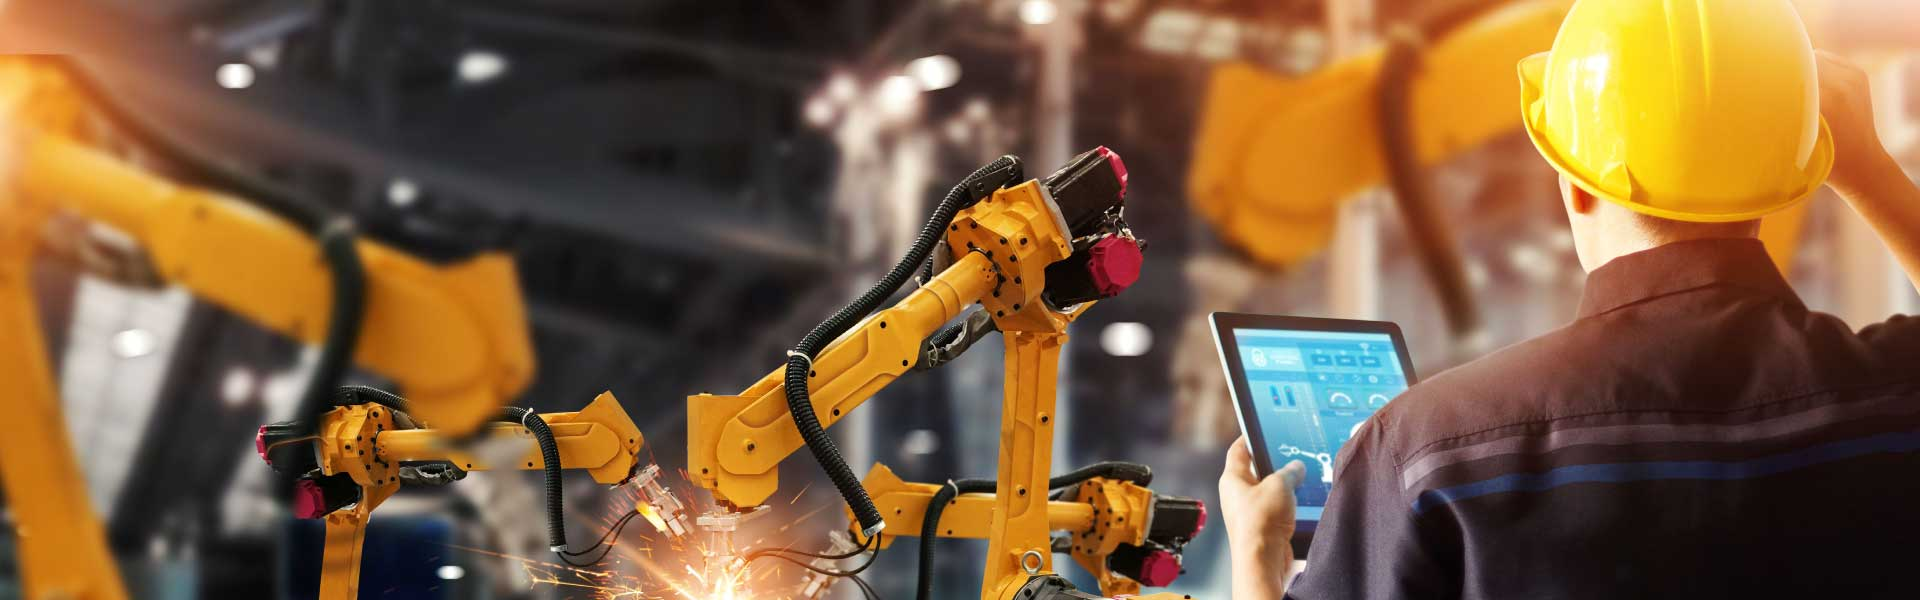 Optimizing IT Costs in Manufacturing